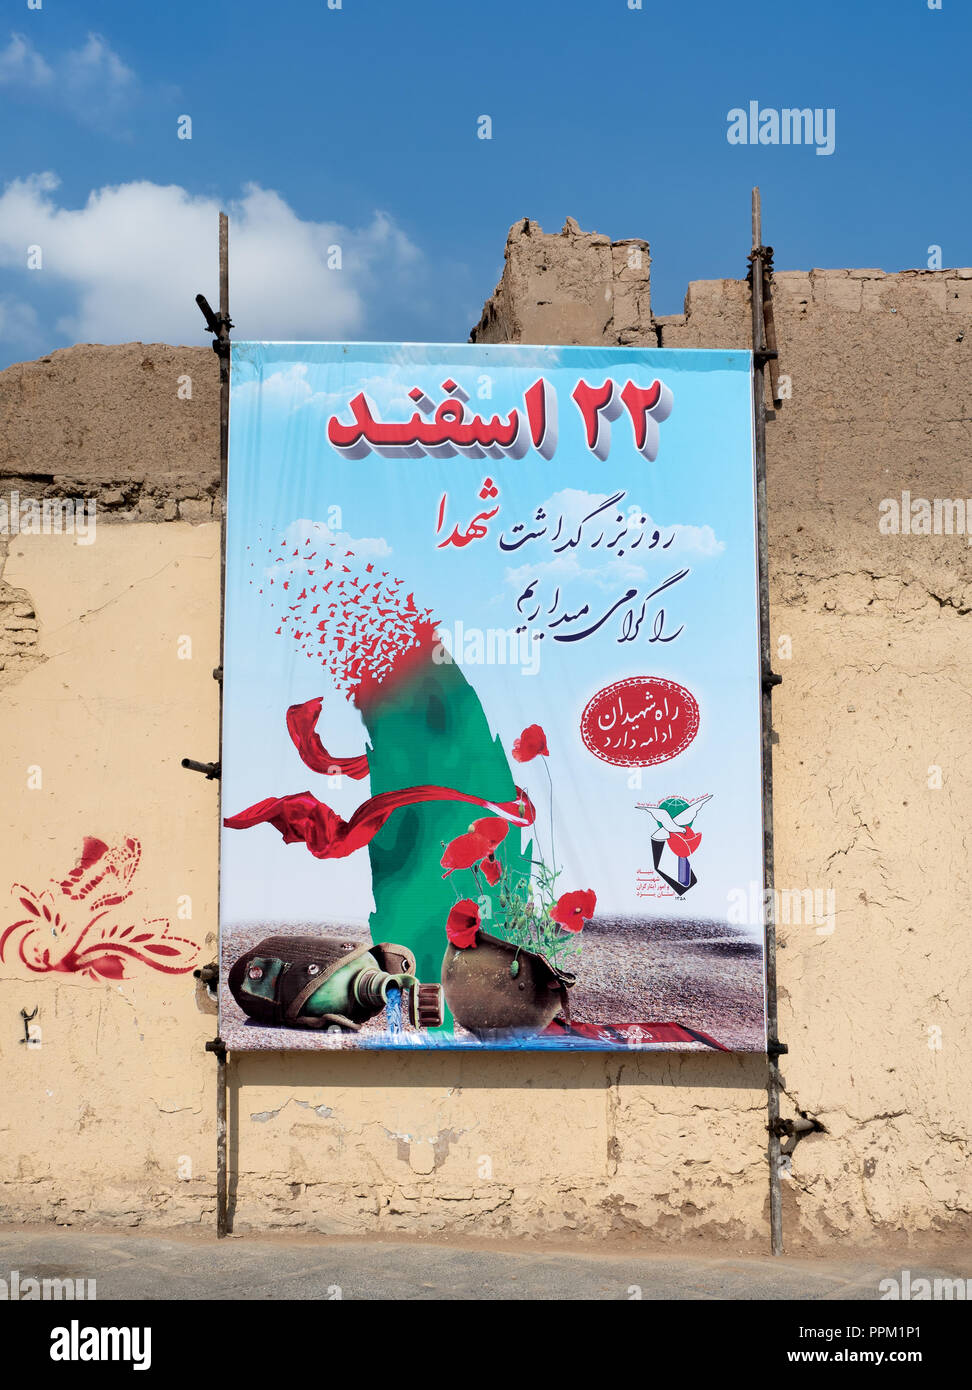 Yazd, Iran - March 7, 2017 : Propaganda poster dedicated to Iran-Iraq war martyrs - Stock Image